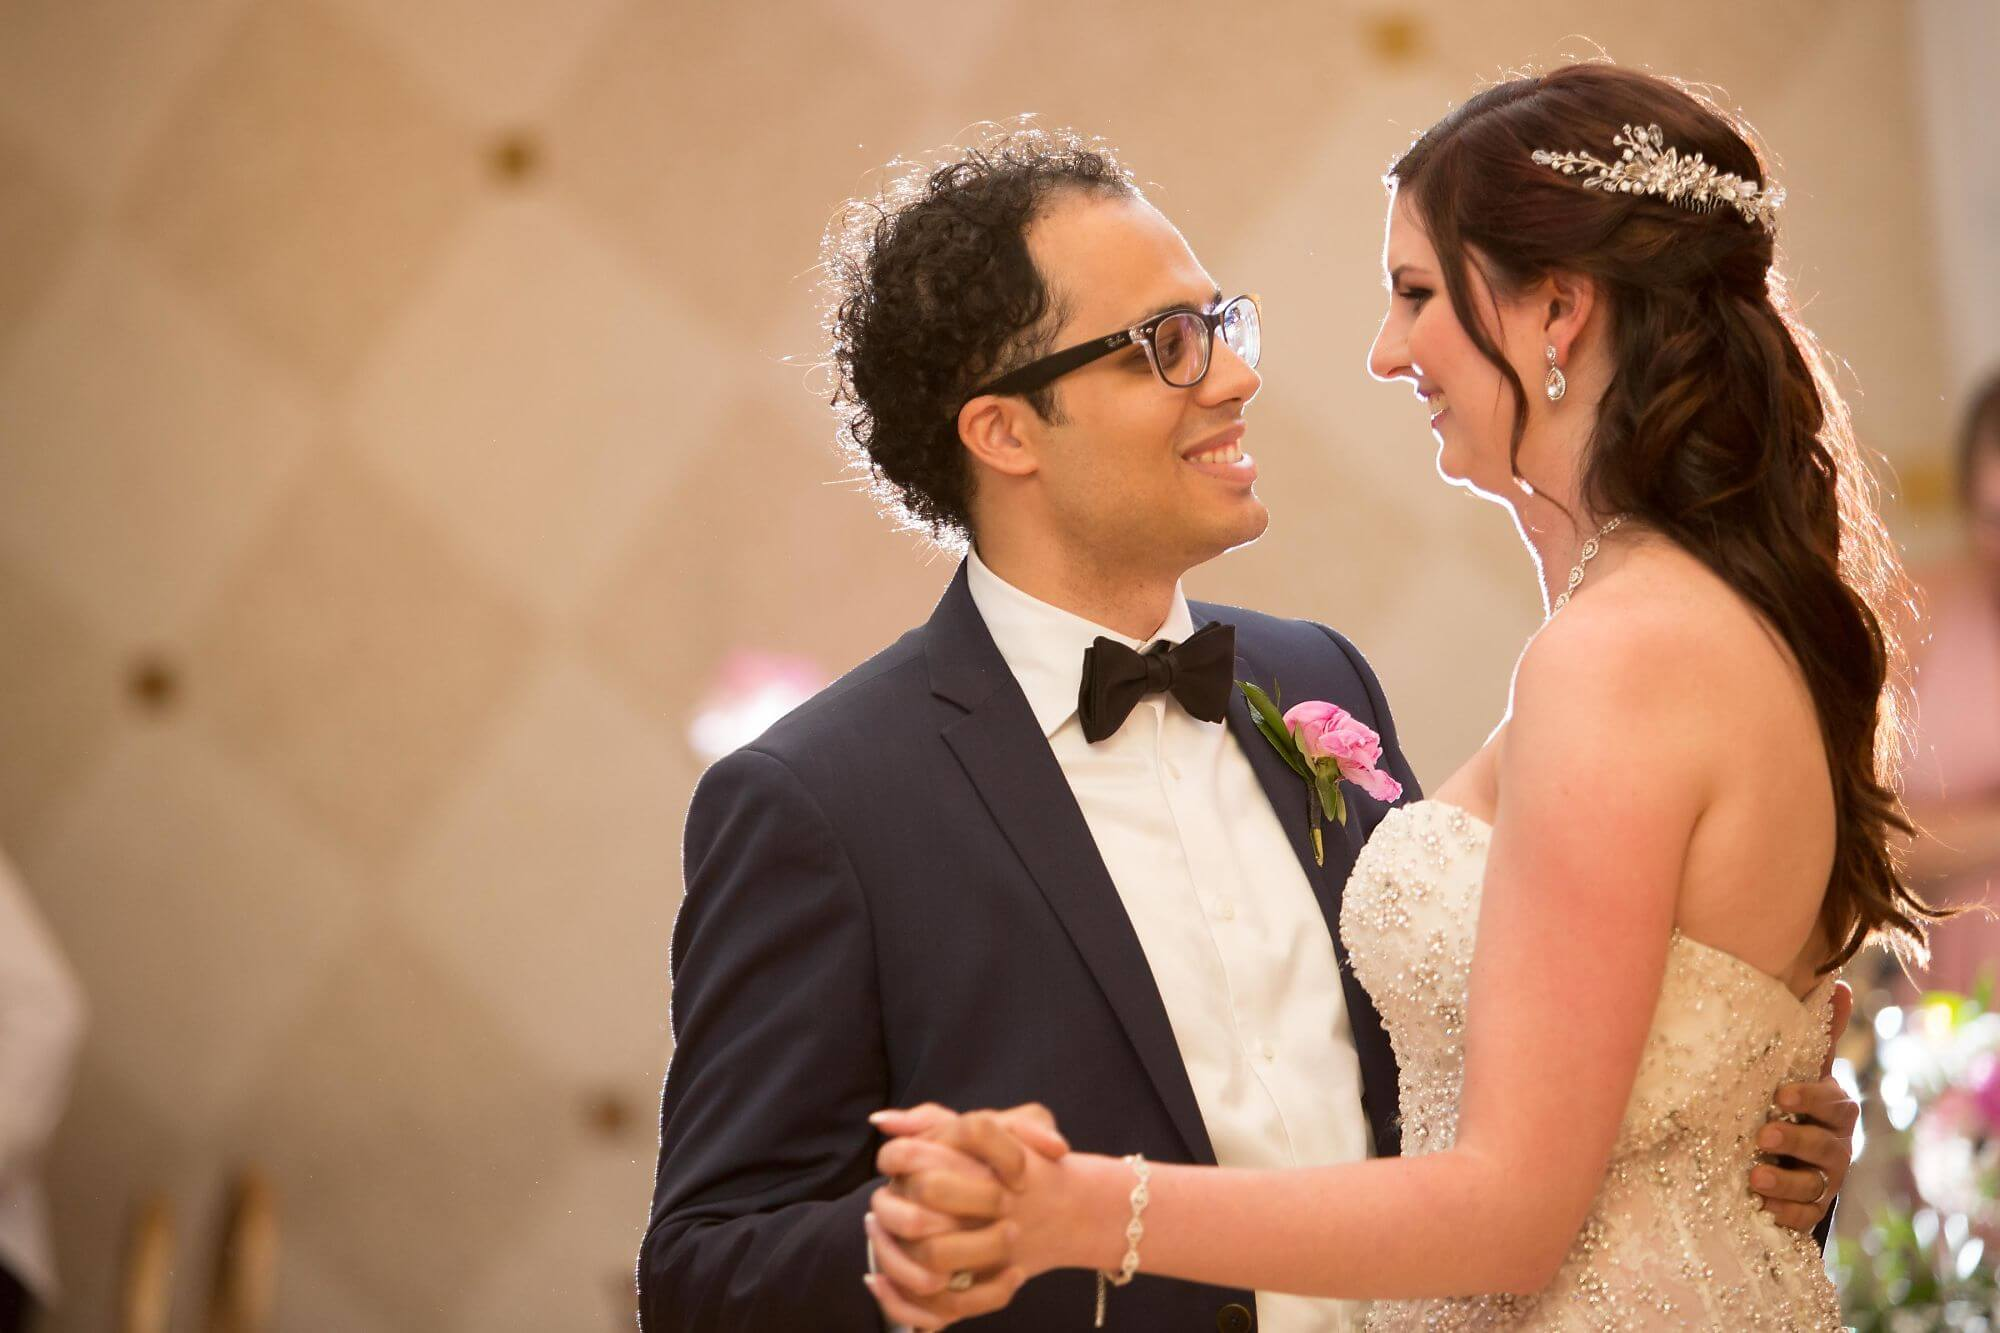 Photo of upper half of bride and groom dancing at wedding at White Oaks Resort - Niagara wedding - Historia Wedding and Event Planning